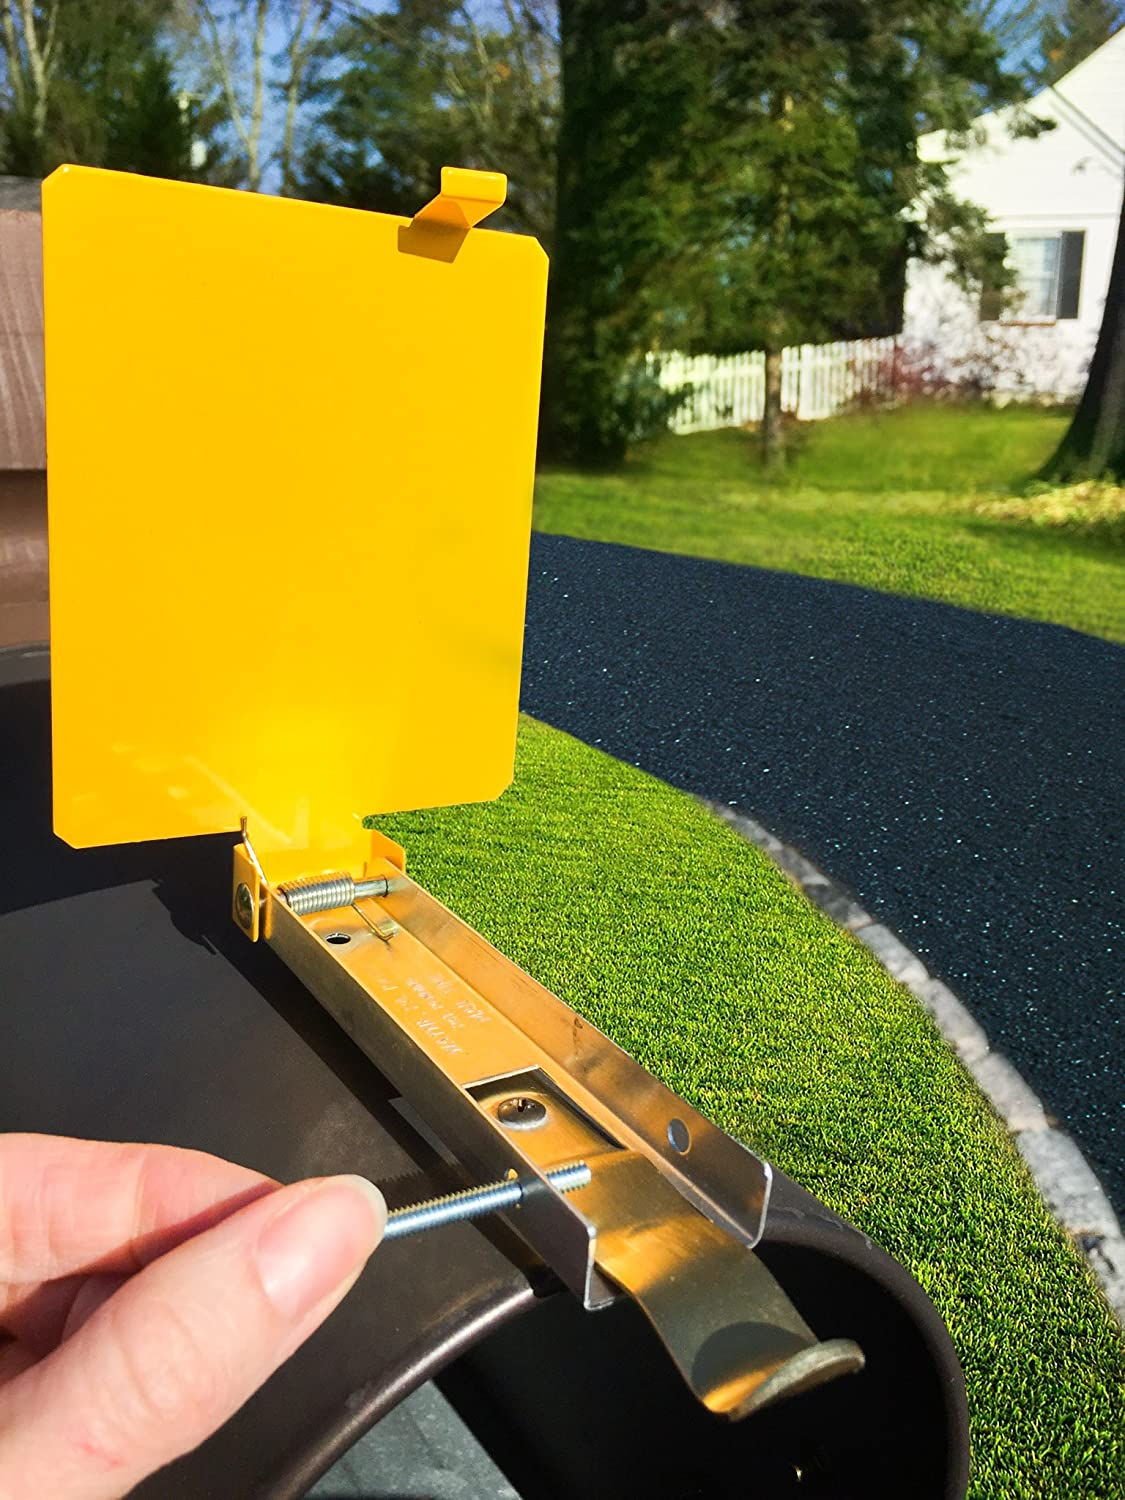 Amazon.com: Mail Time! Yellow Mailbox Alert Signal Flag for Long ...